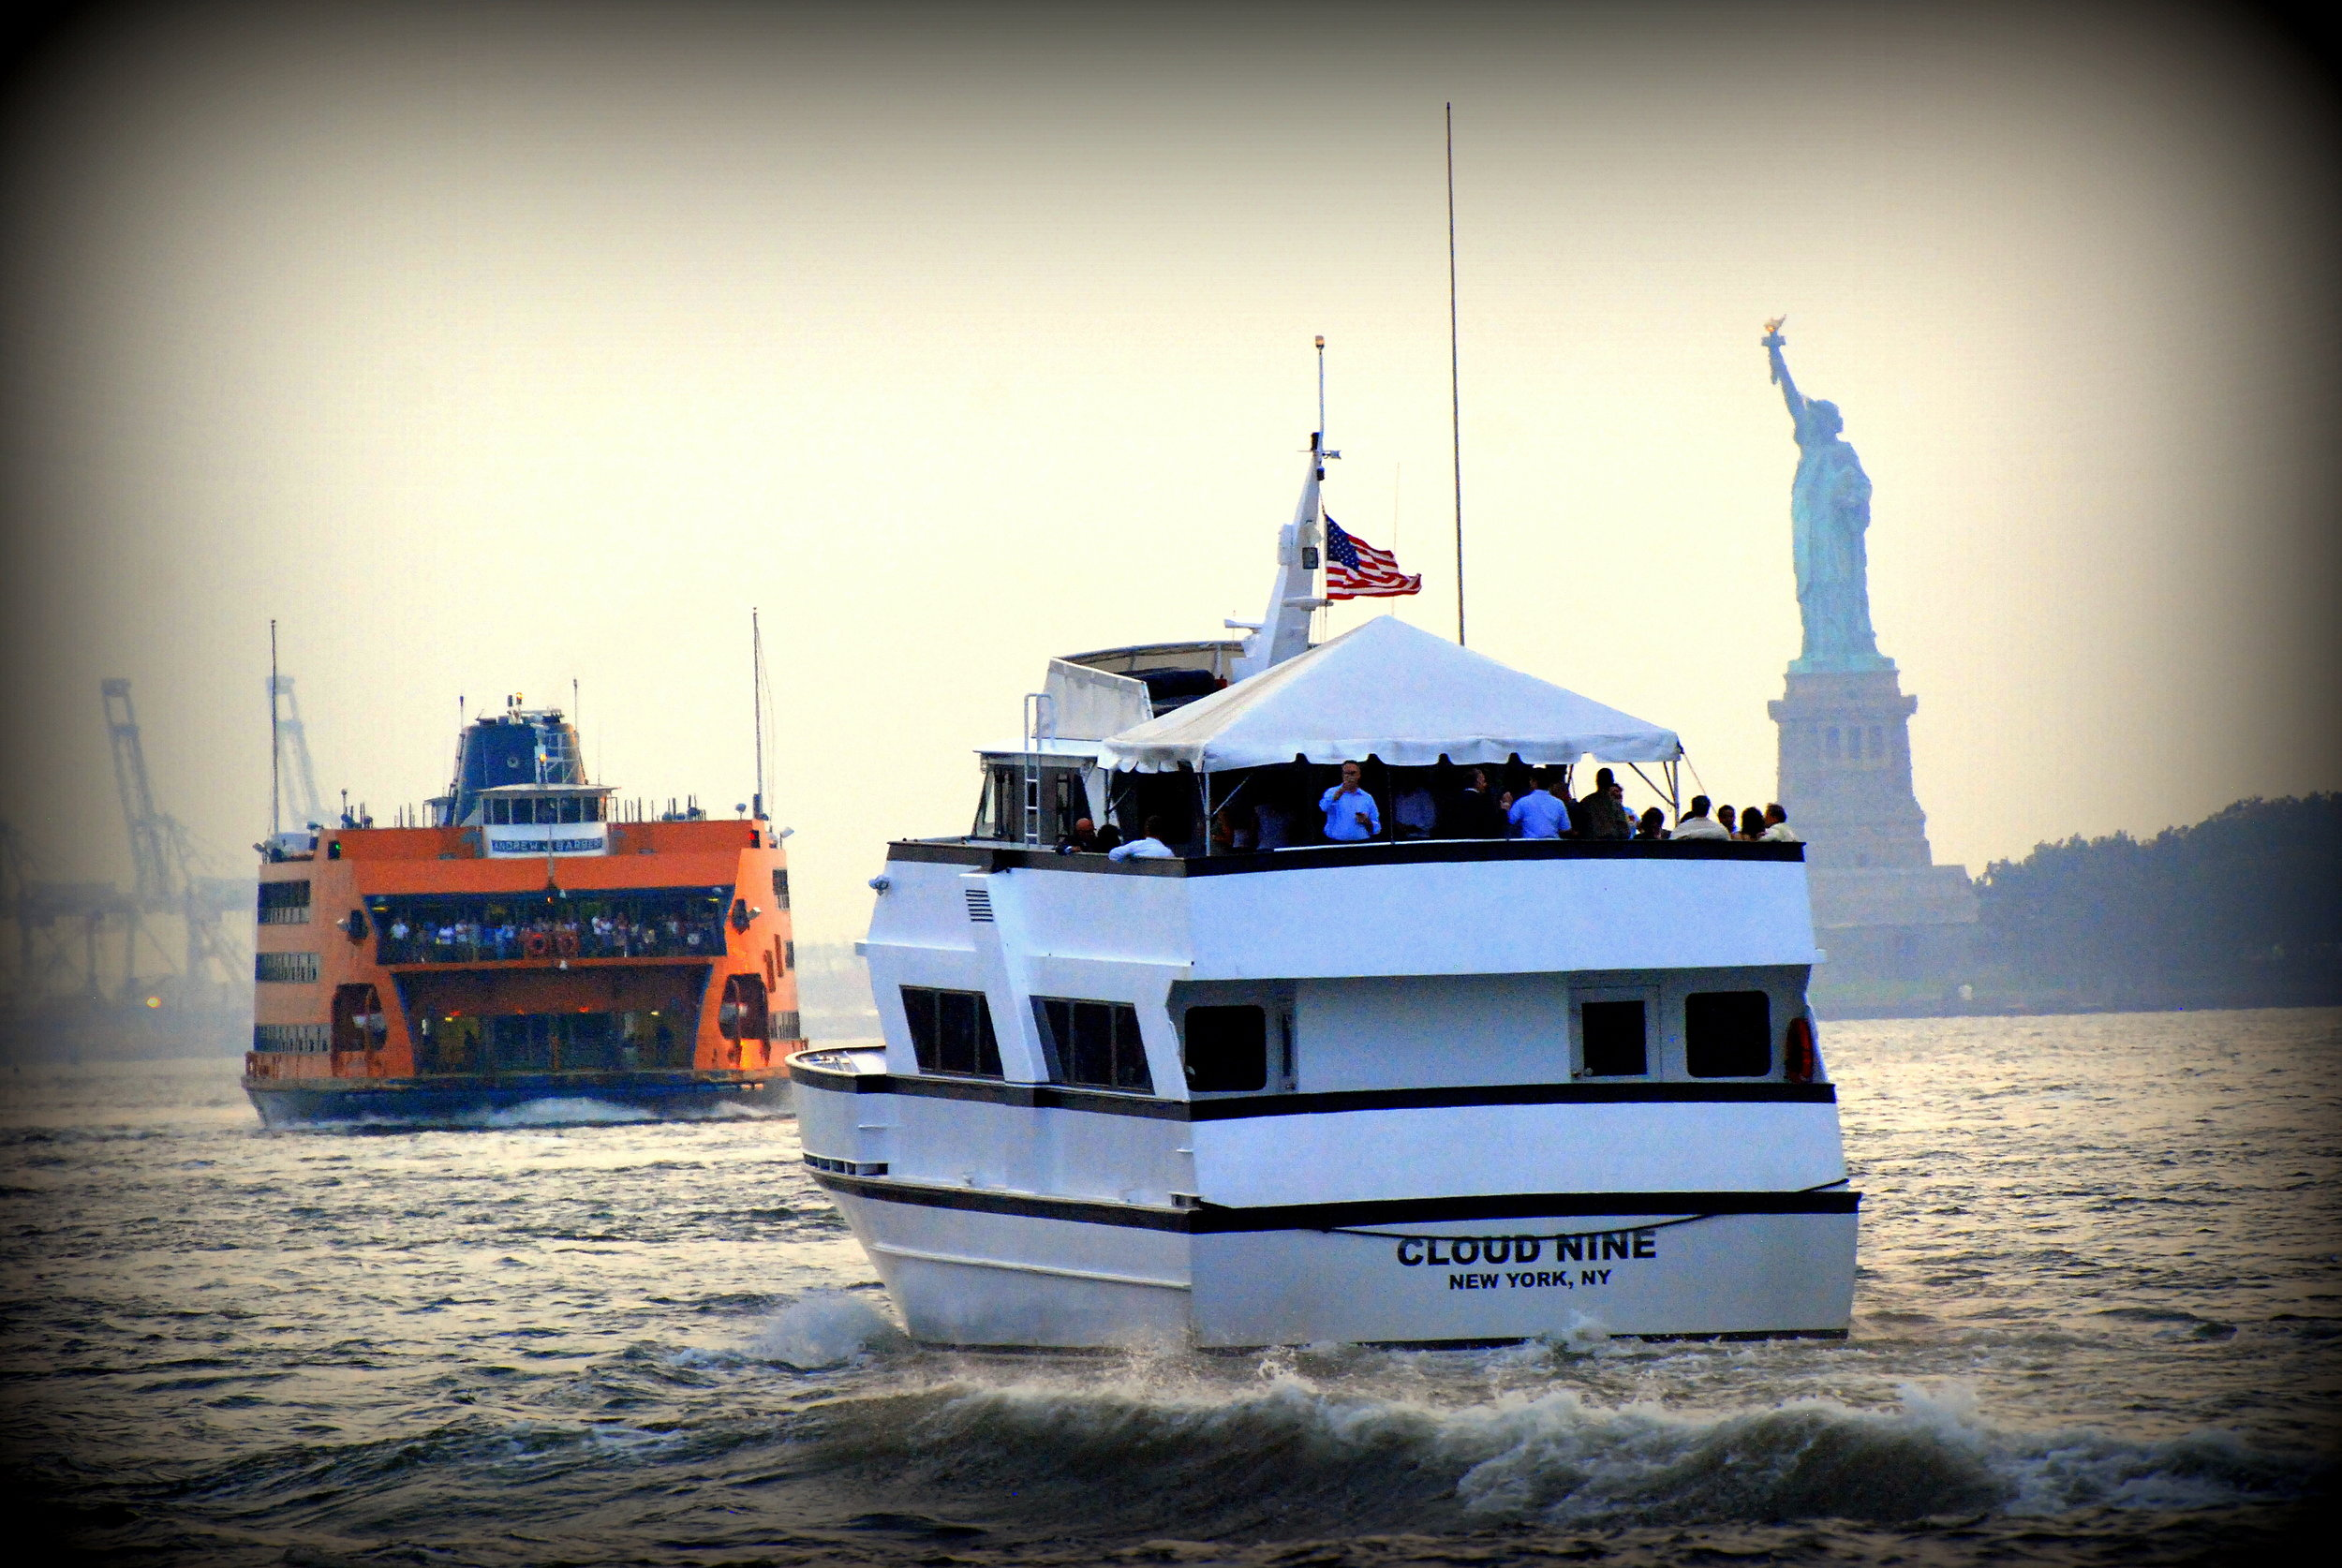 DSC_0059_1_CloudNineYacht_StatenIslandFerry_StatueOfLiberty.jpg